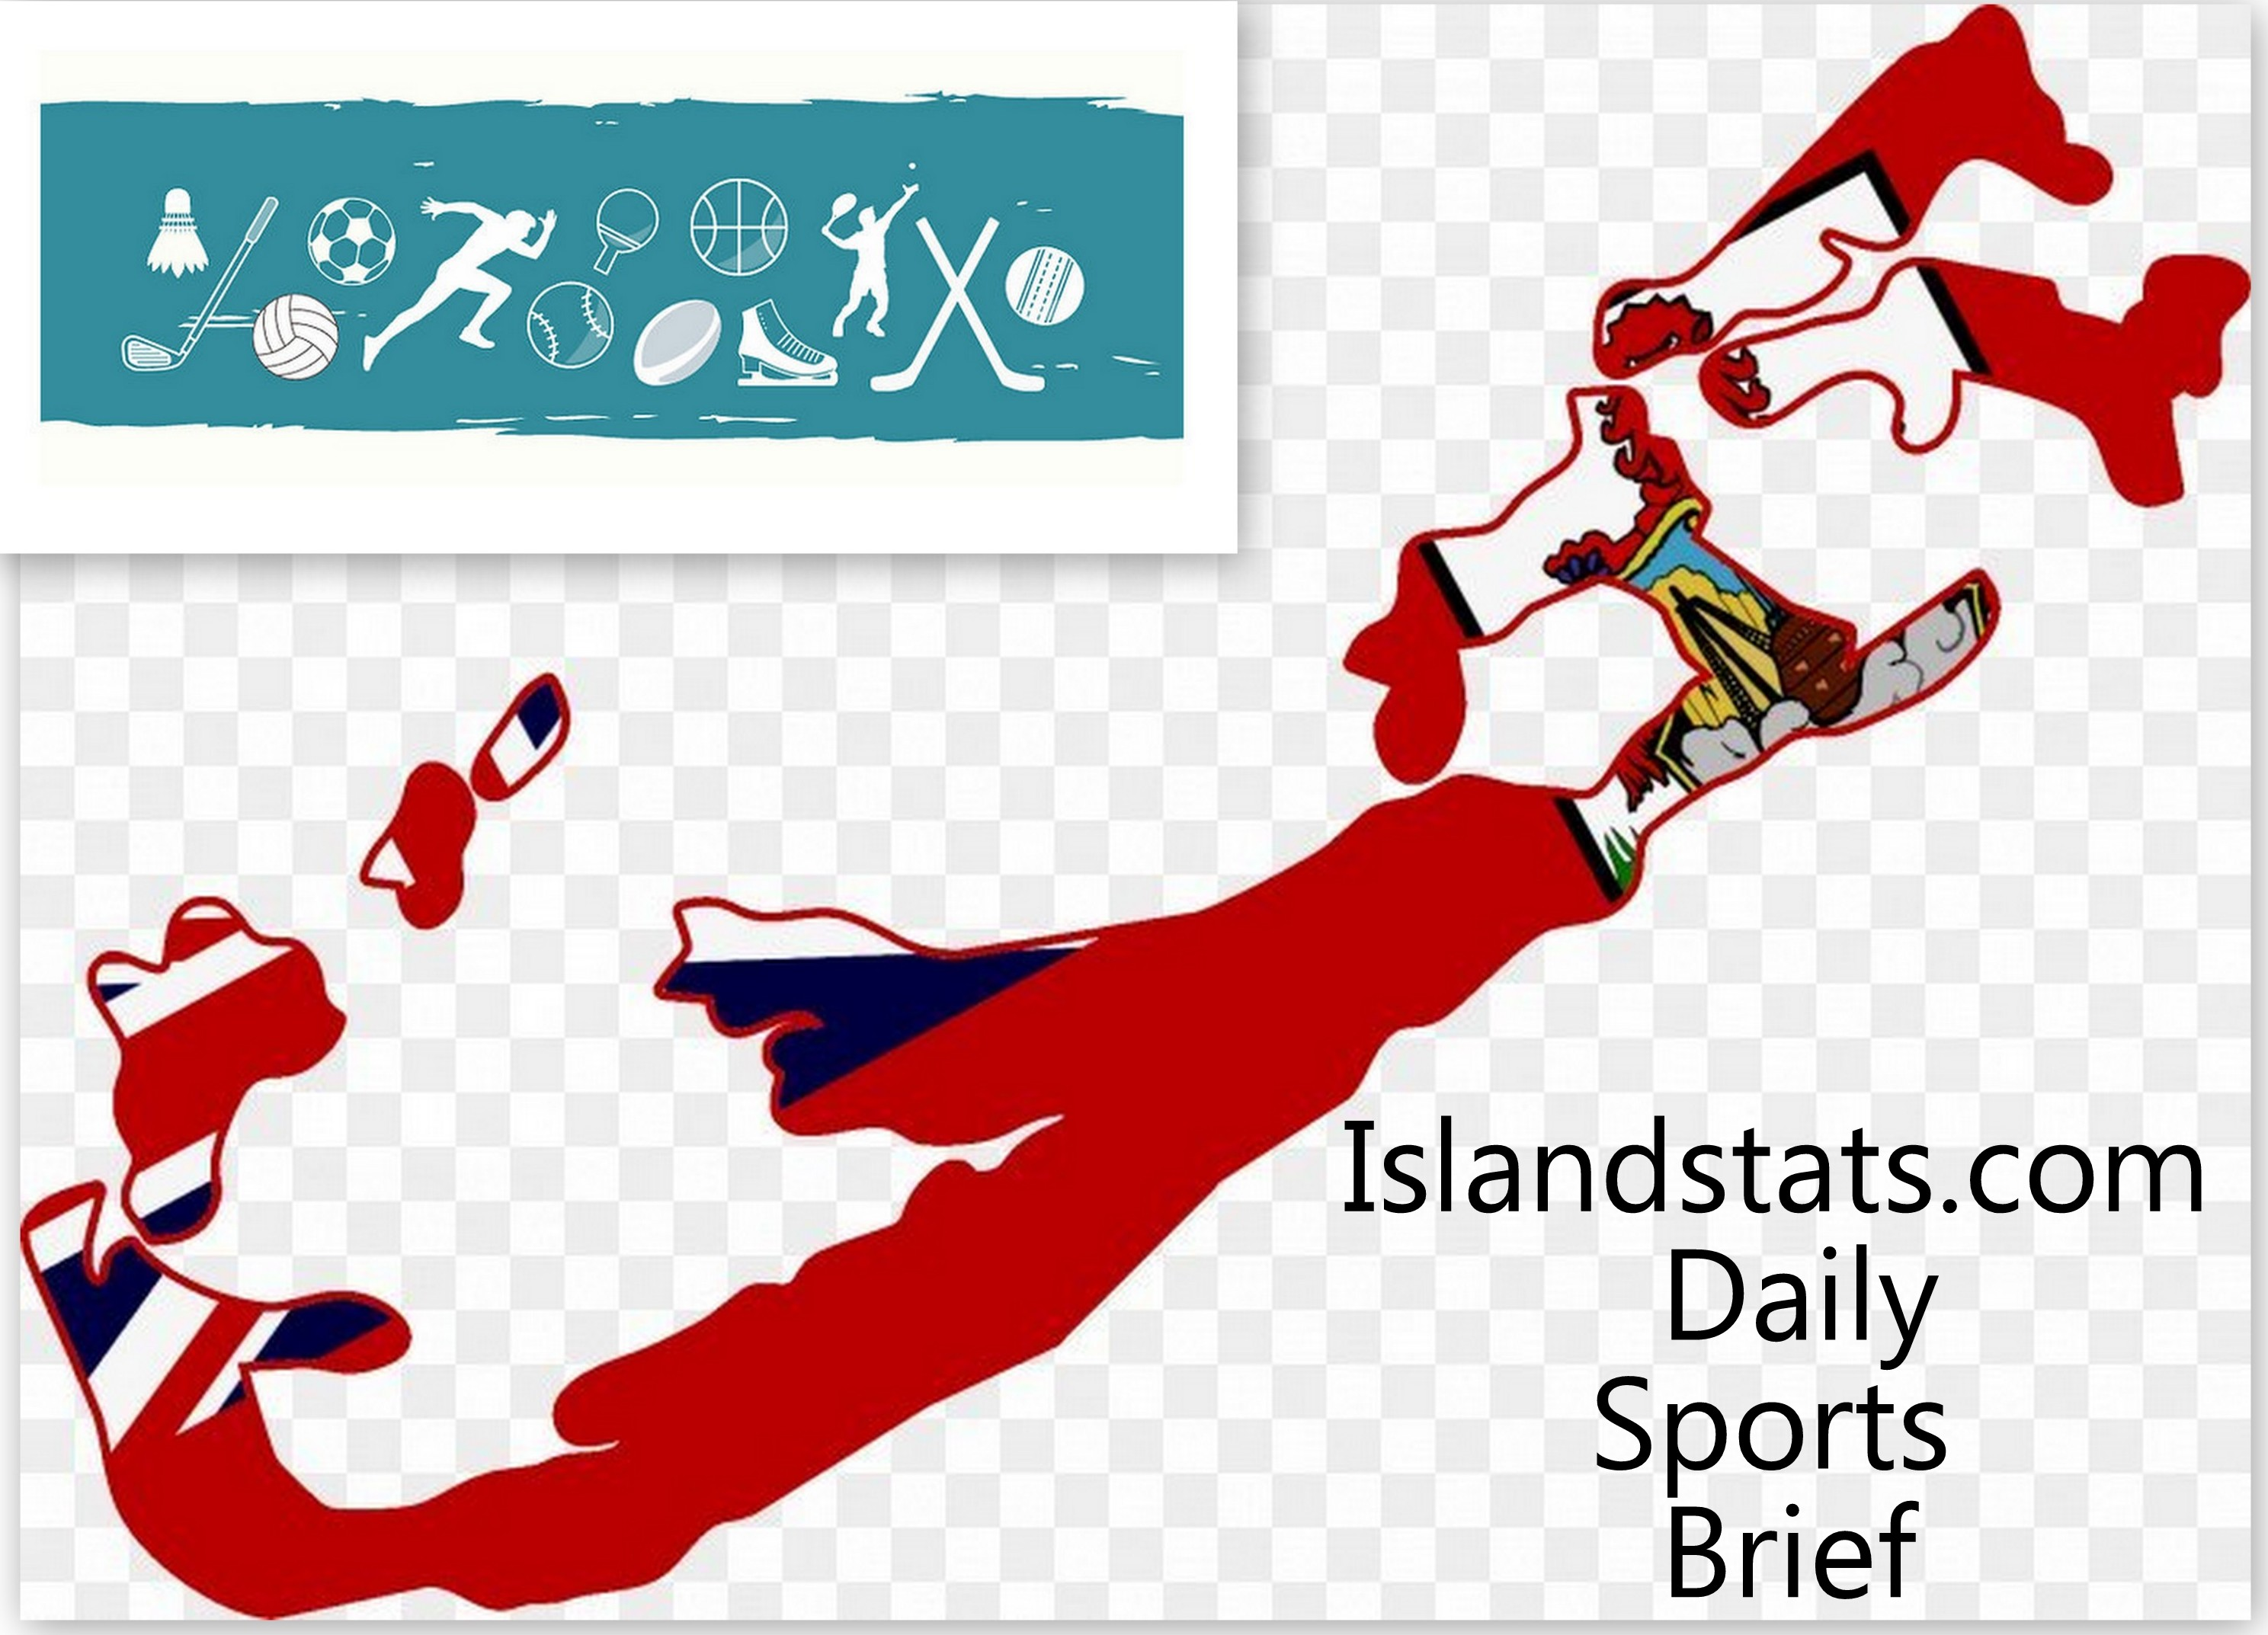 Islandstats.com Friday Sports Brief Round-Up (Other Sports)